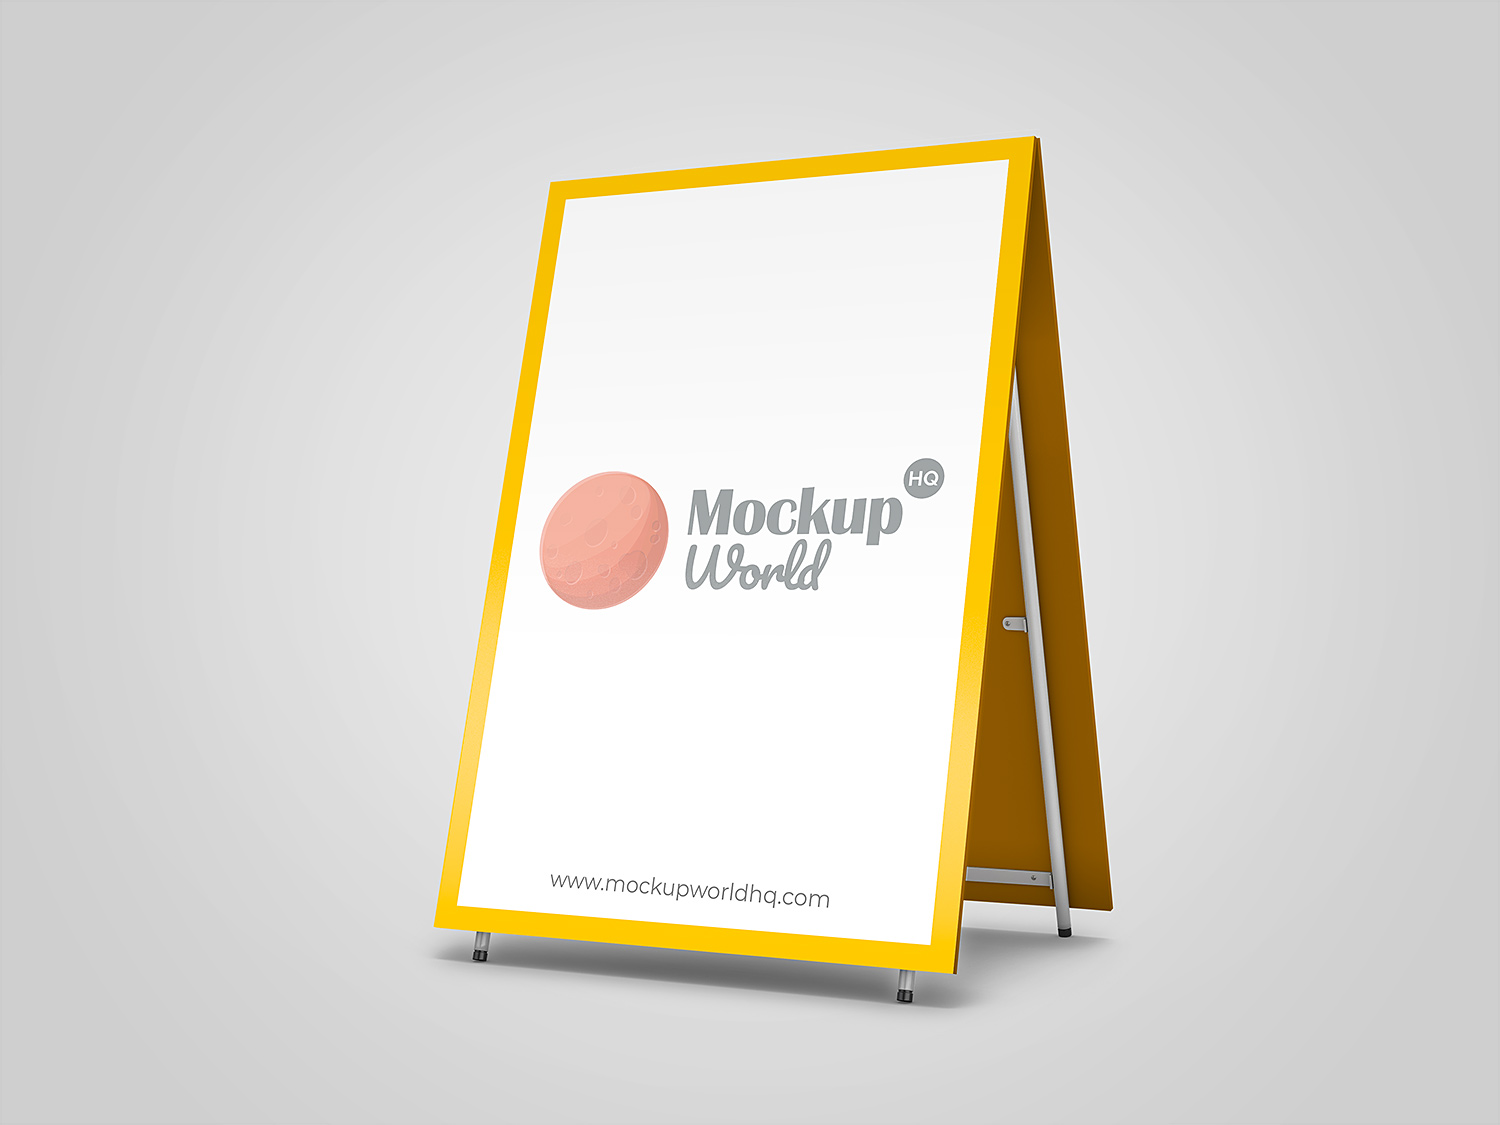 Sign board on the front side of a restaurant. Advertising Sandwich Board Mockup Mockup World Hq